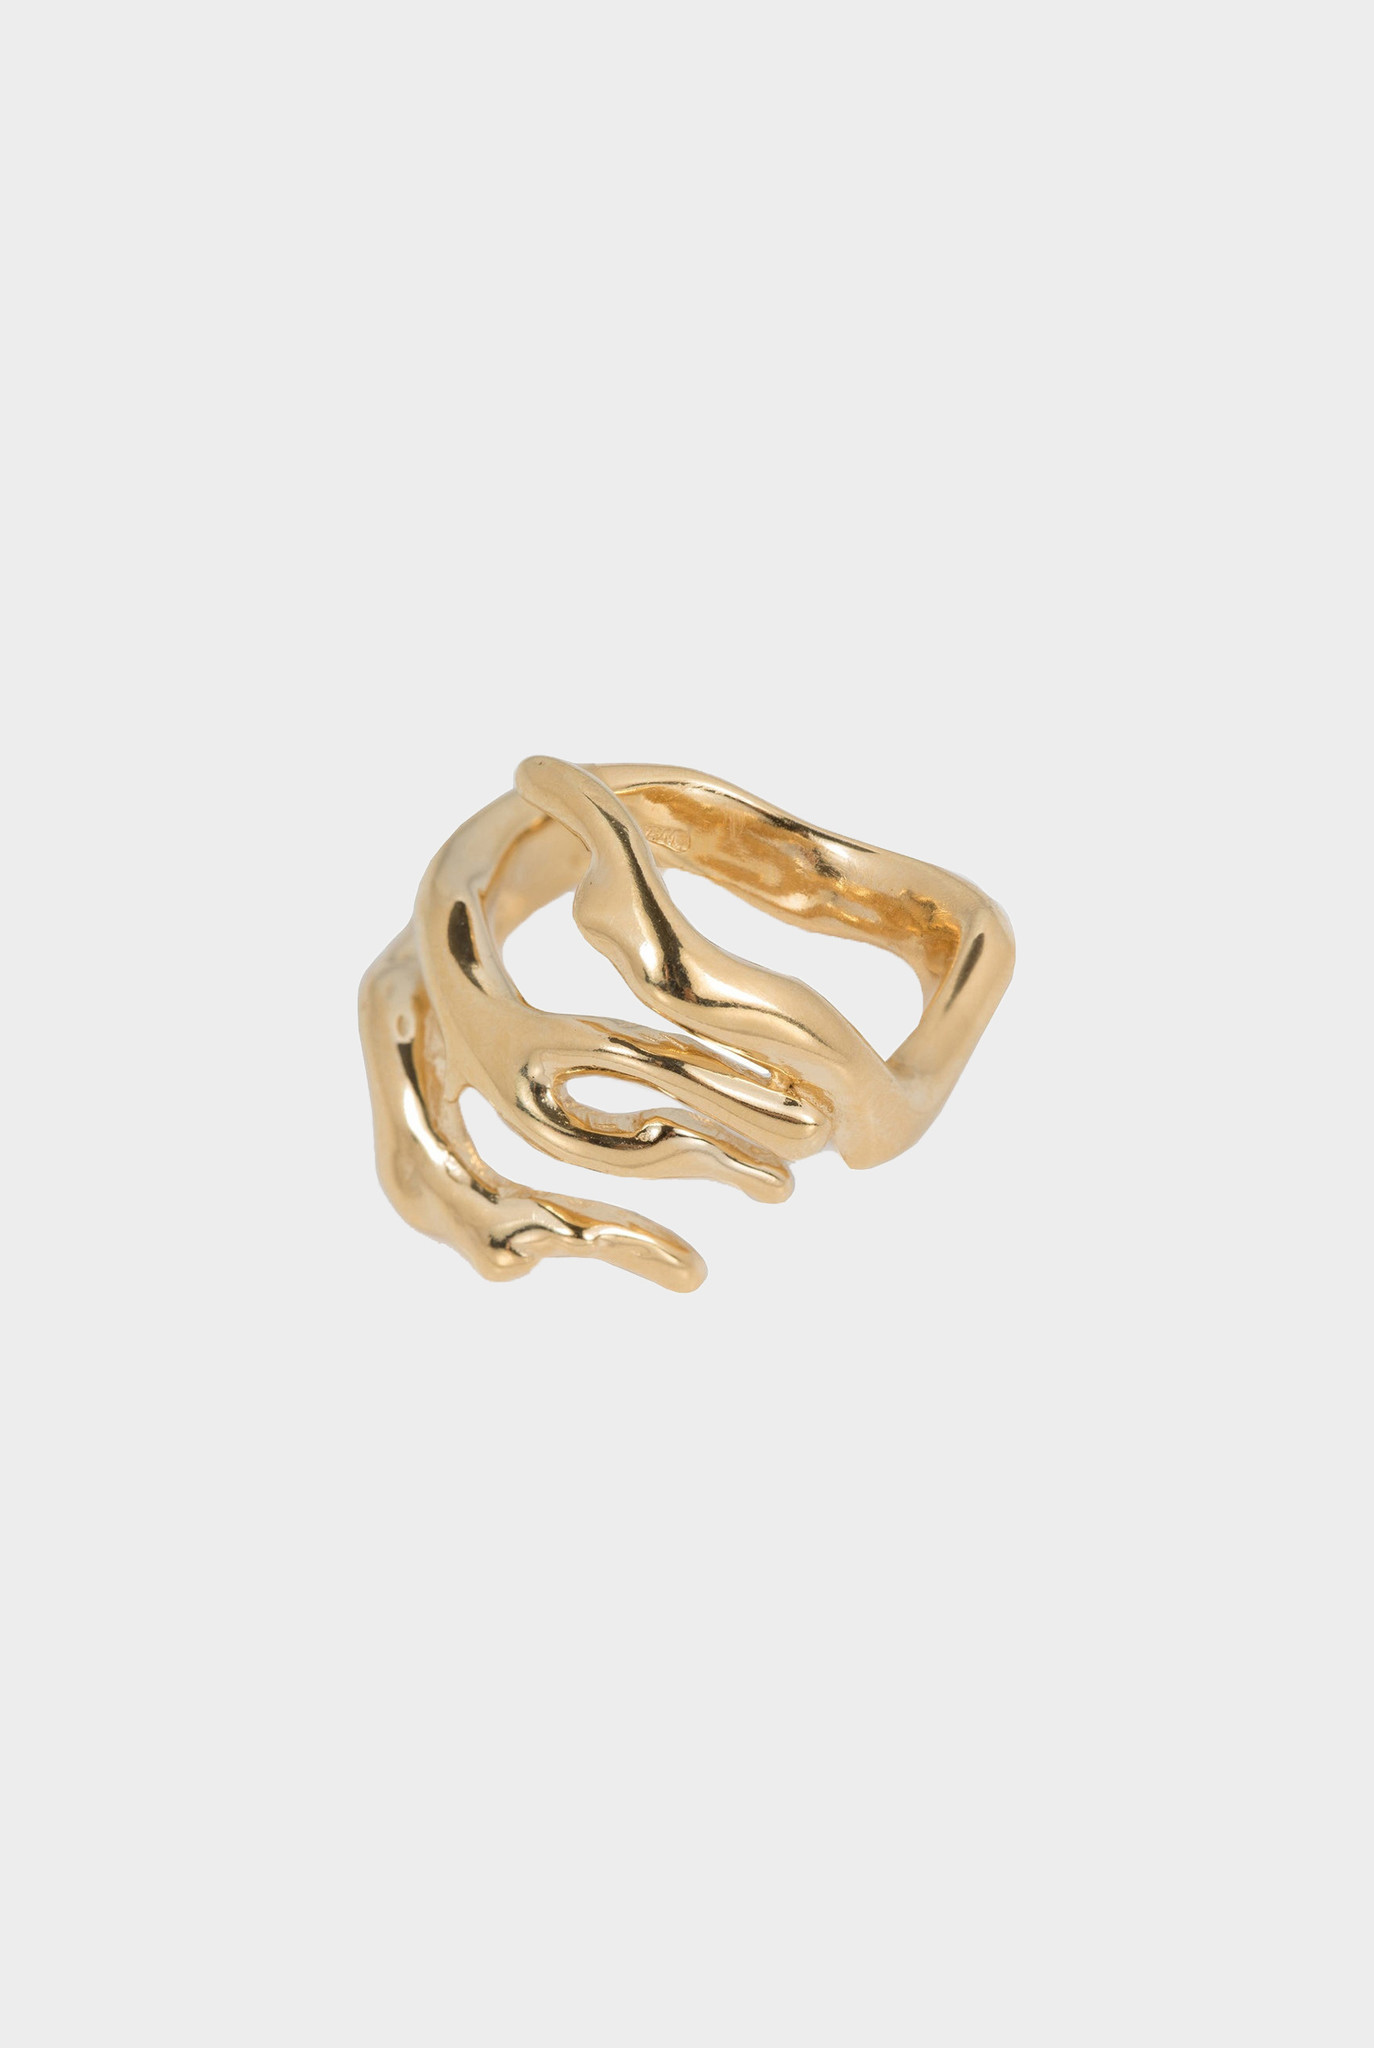 Organic shaped statement ring Goldplated